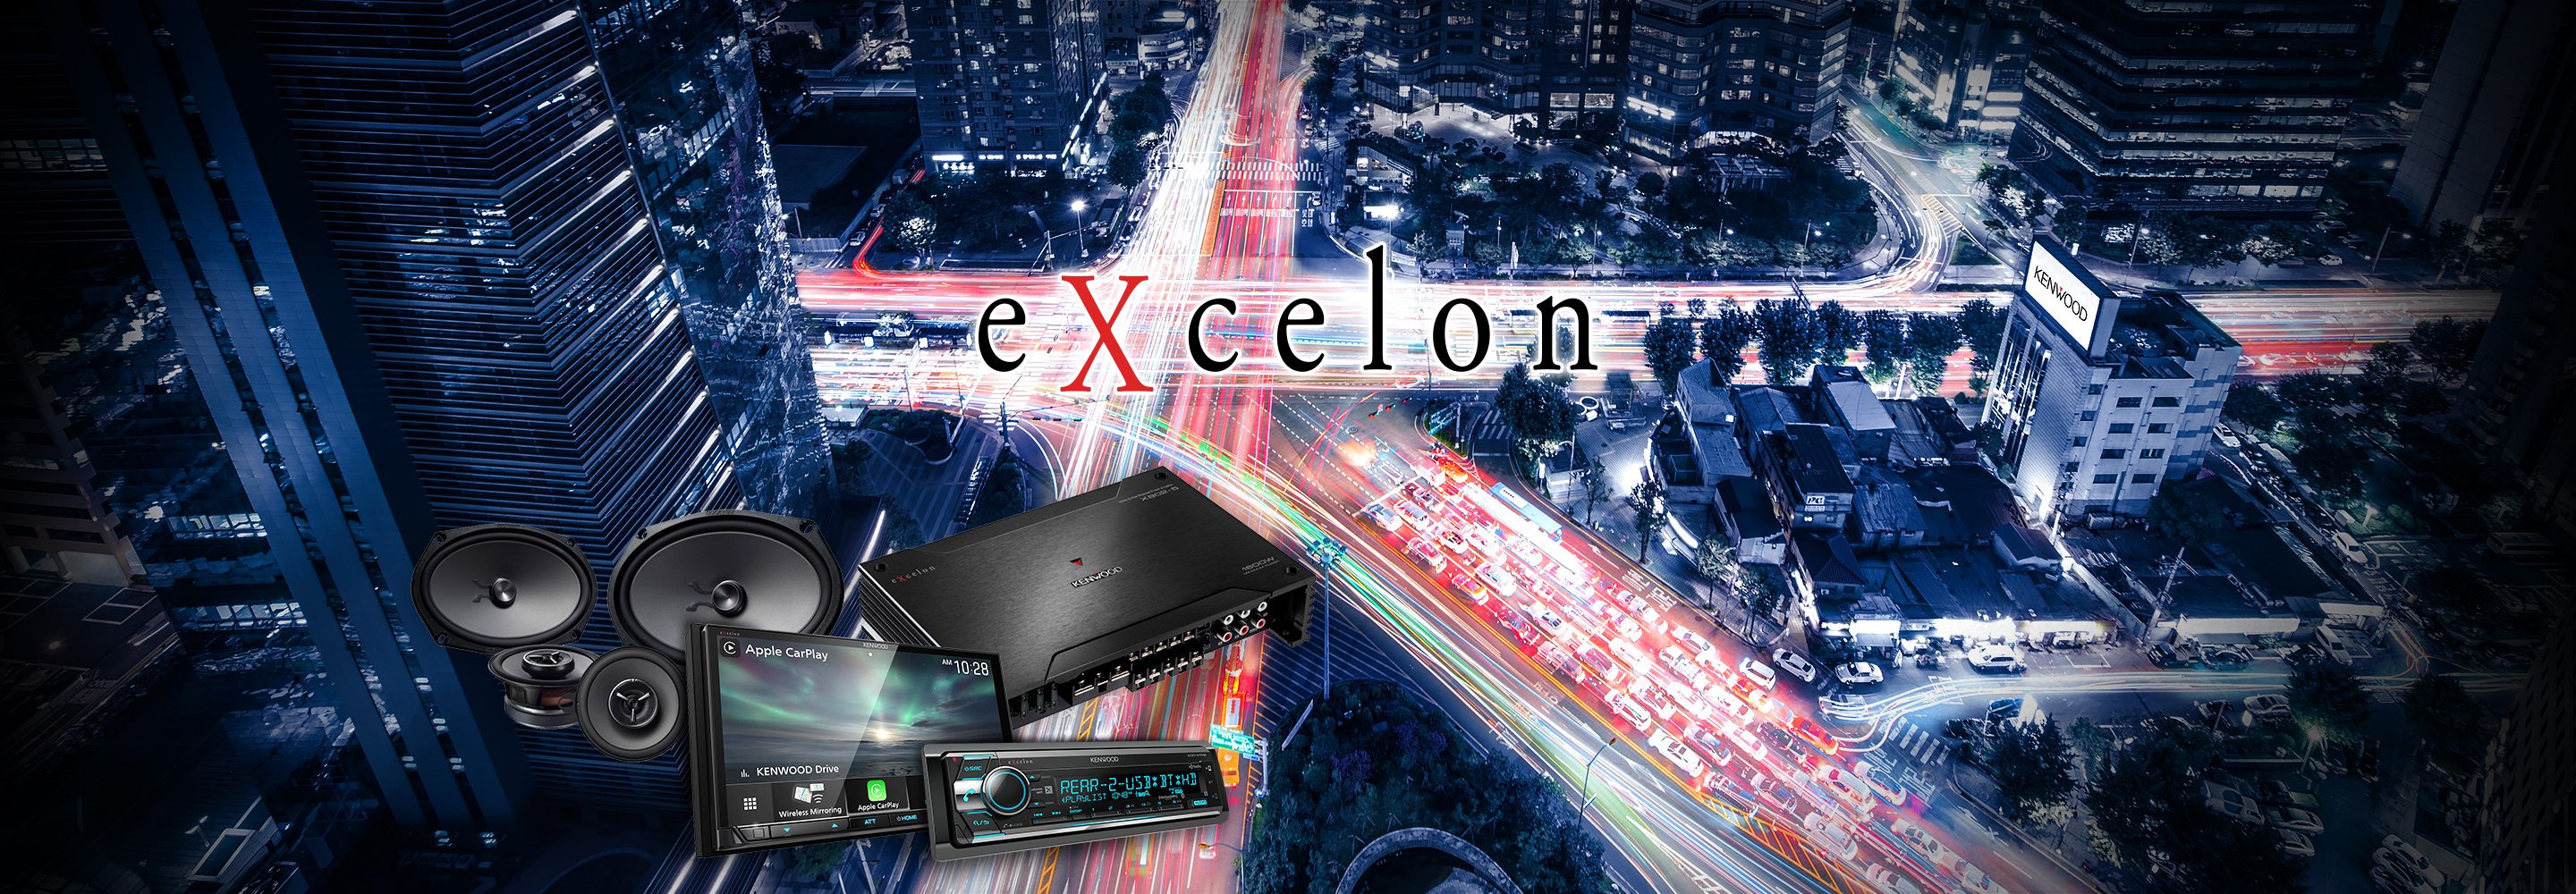 excelon_visual